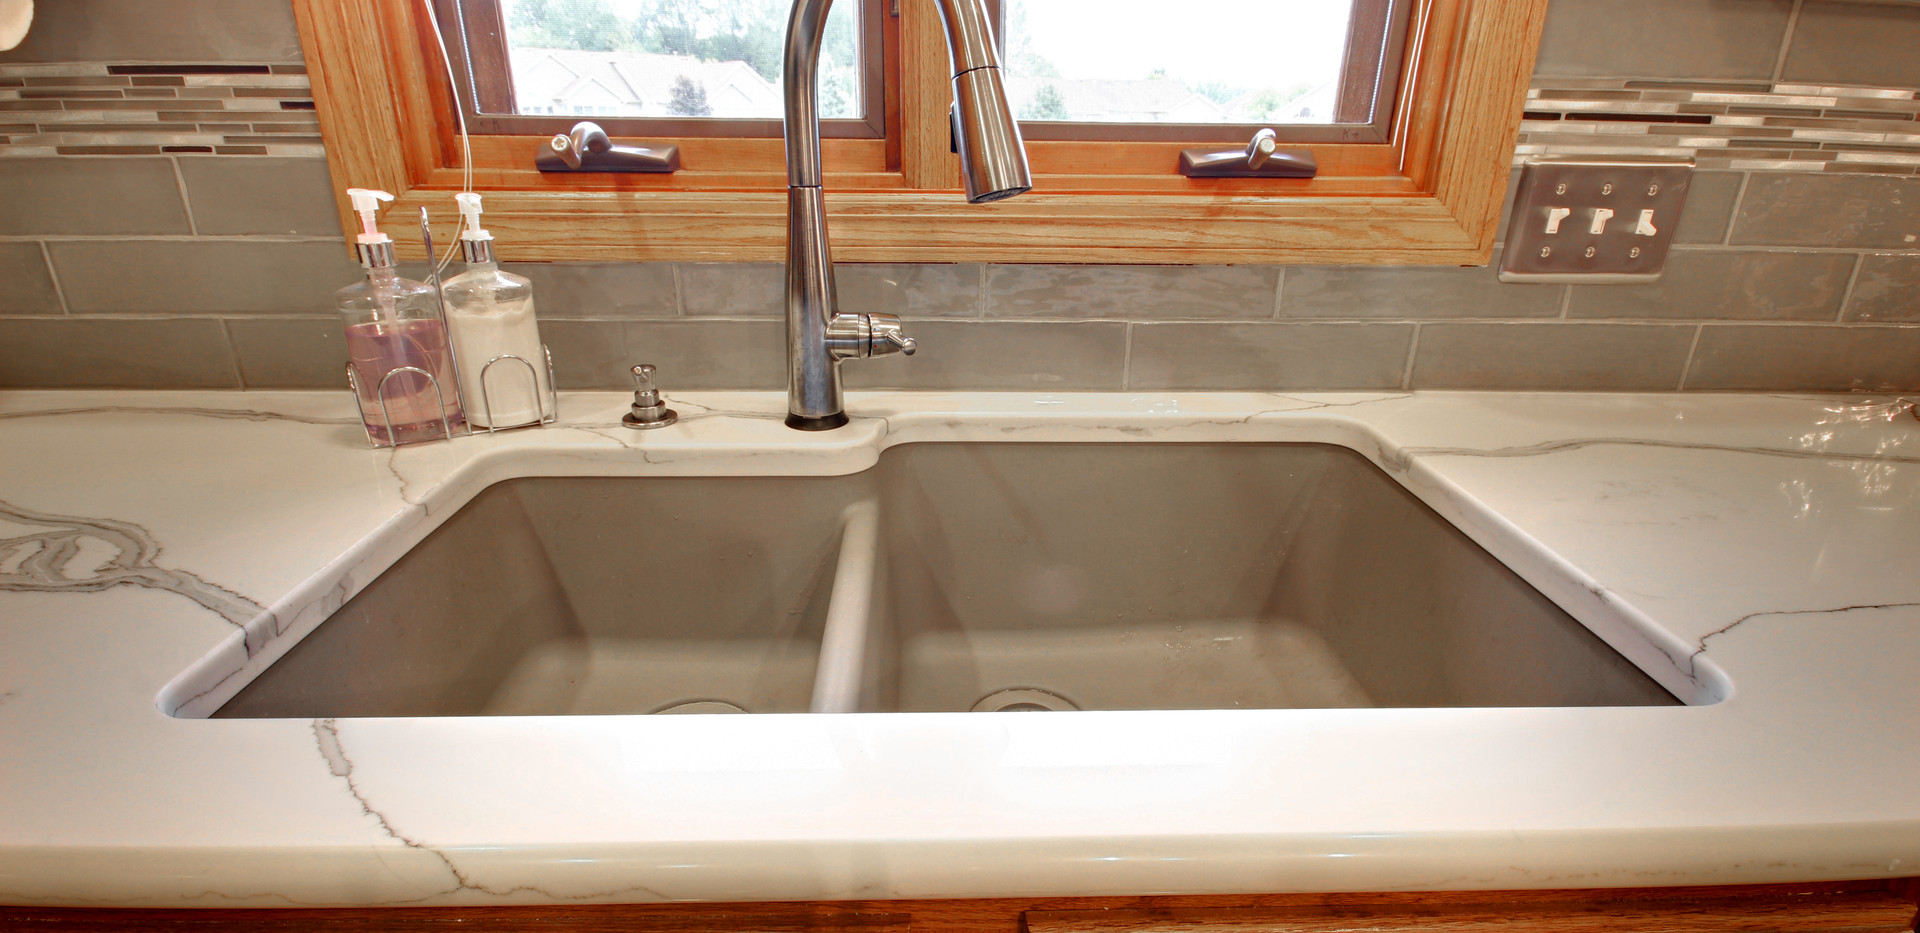 New sink area of Hudsonville kitchen remodel